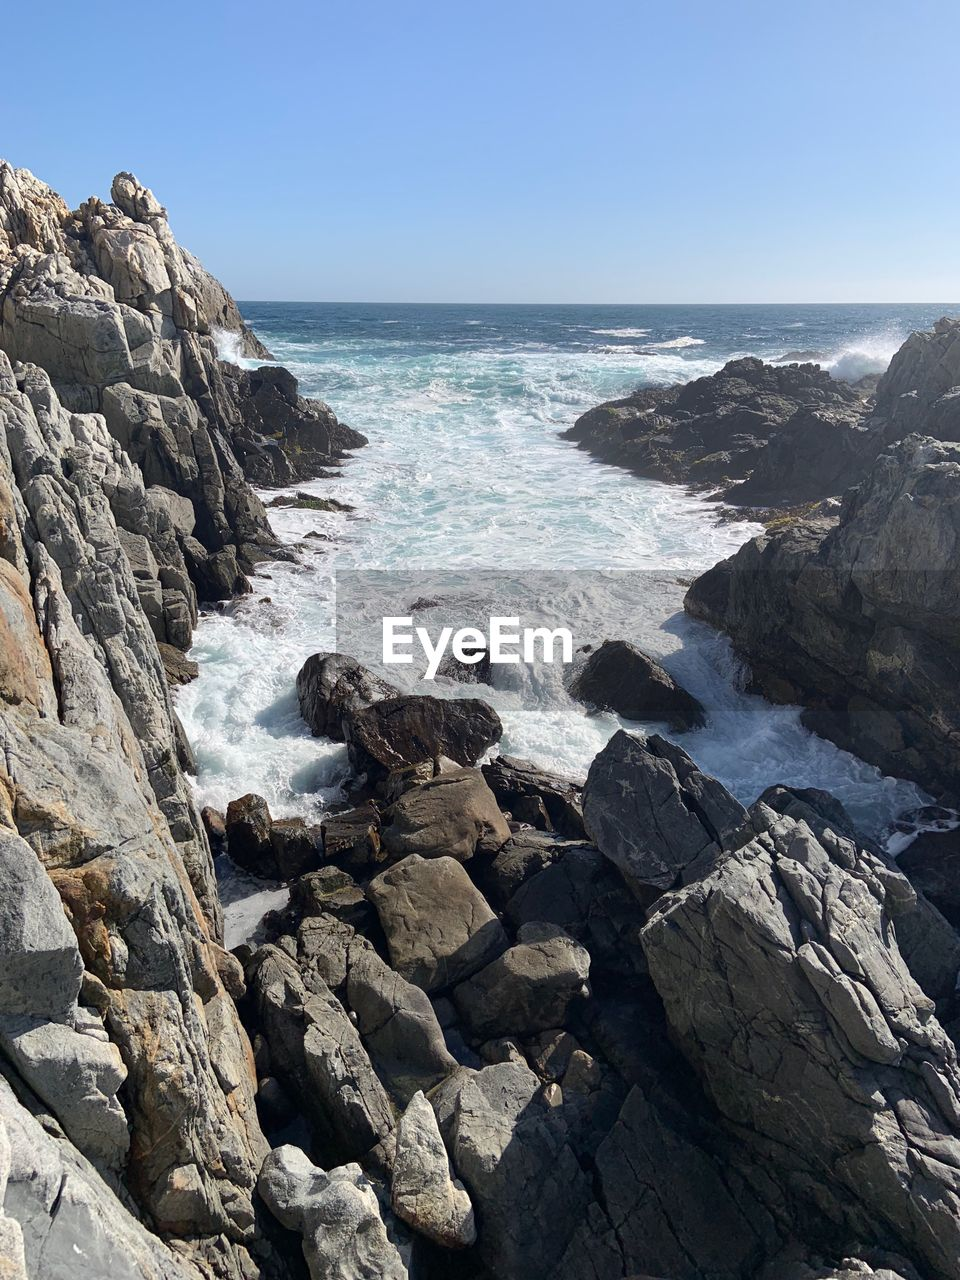 sea, rock, rock - object, solid, water, sky, horizon over water, horizon, land, beauty in nature, scenics - nature, beach, nature, clear sky, day, motion, rock formation, wave, no people, outdoors, rocky coastline, breaking, eroded